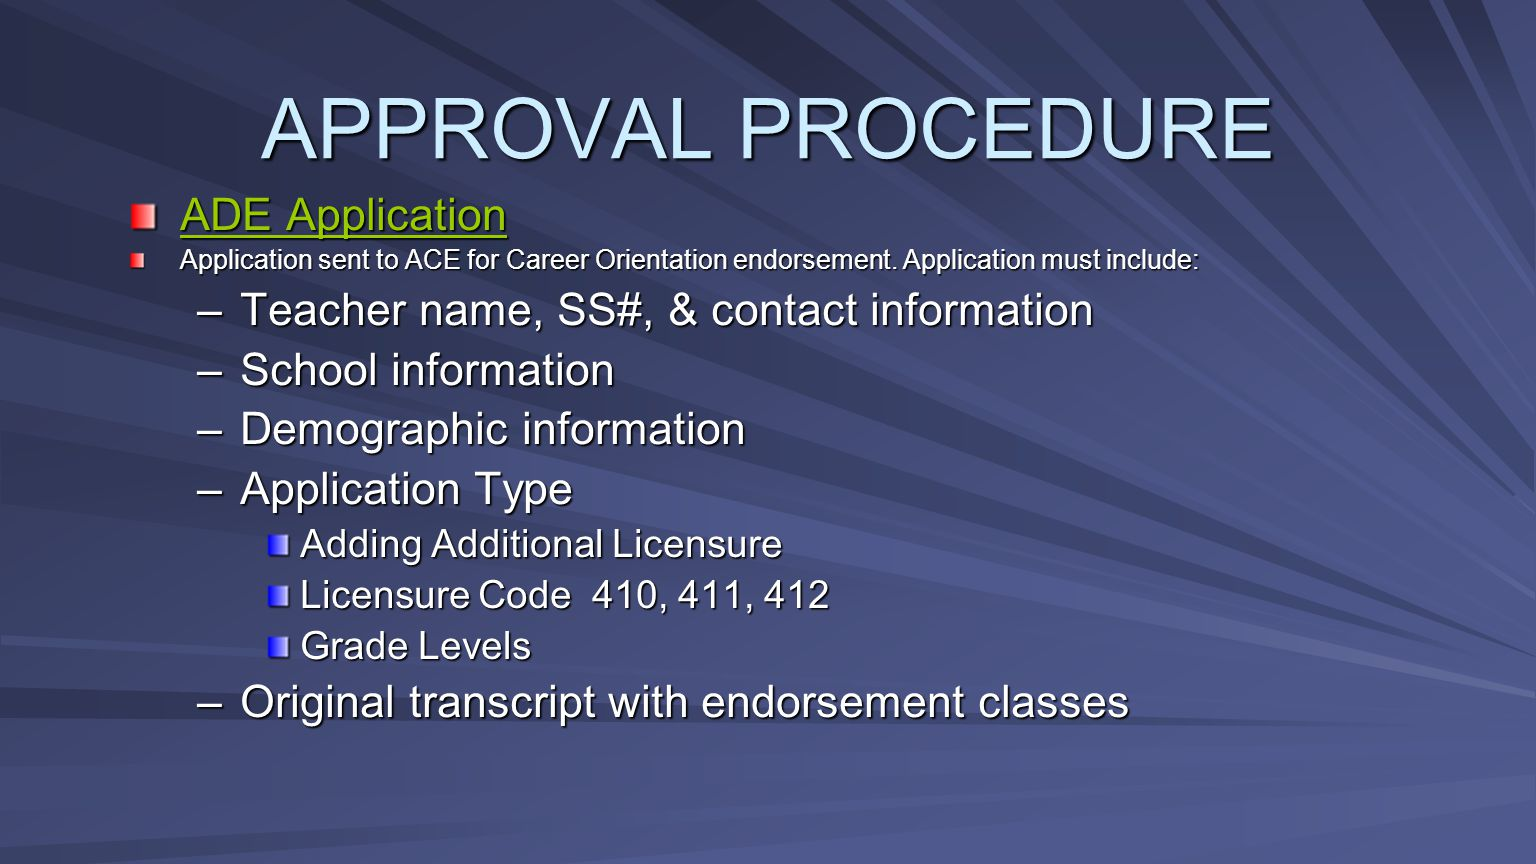 APPROVAL PROCEDURE ADE Application ADE Application Application sent to ACE for Career Orientation endorsement. Application must include: –Teacher name